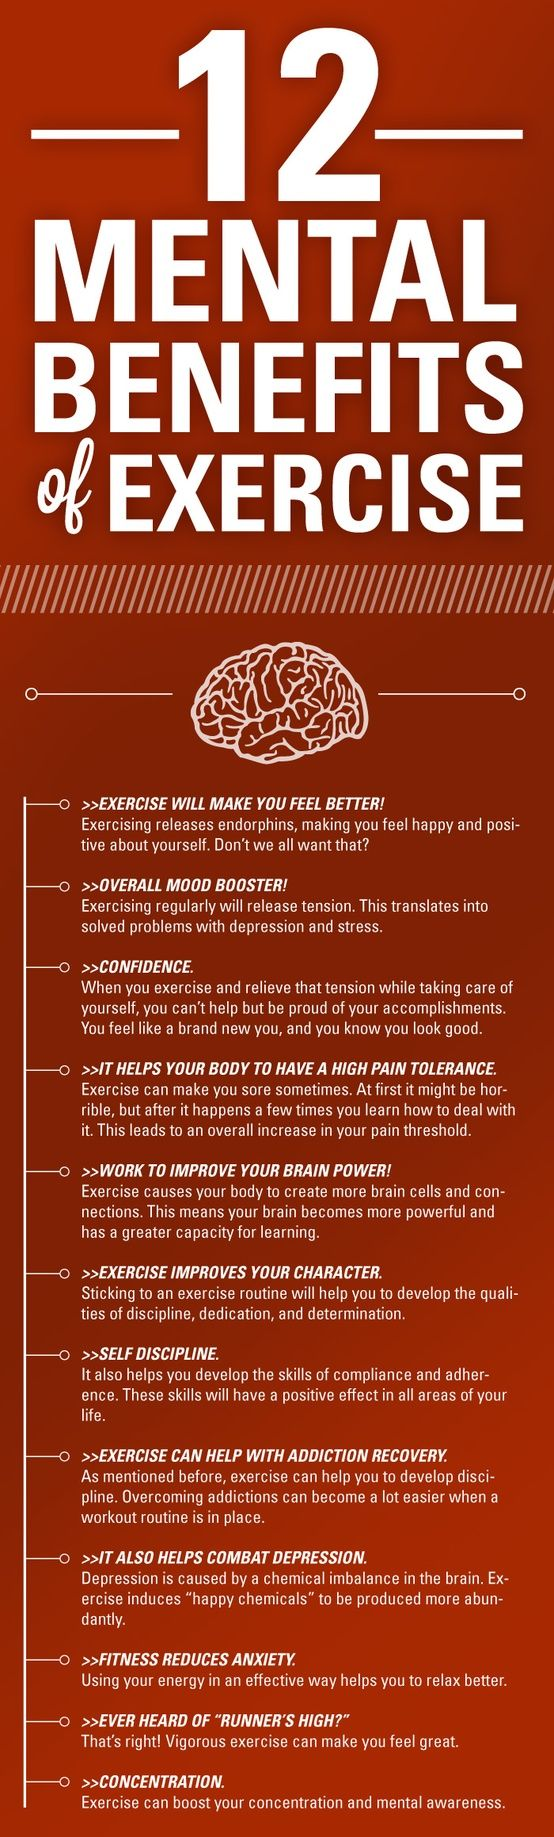 Mental benefits of #Exercise #Infographic